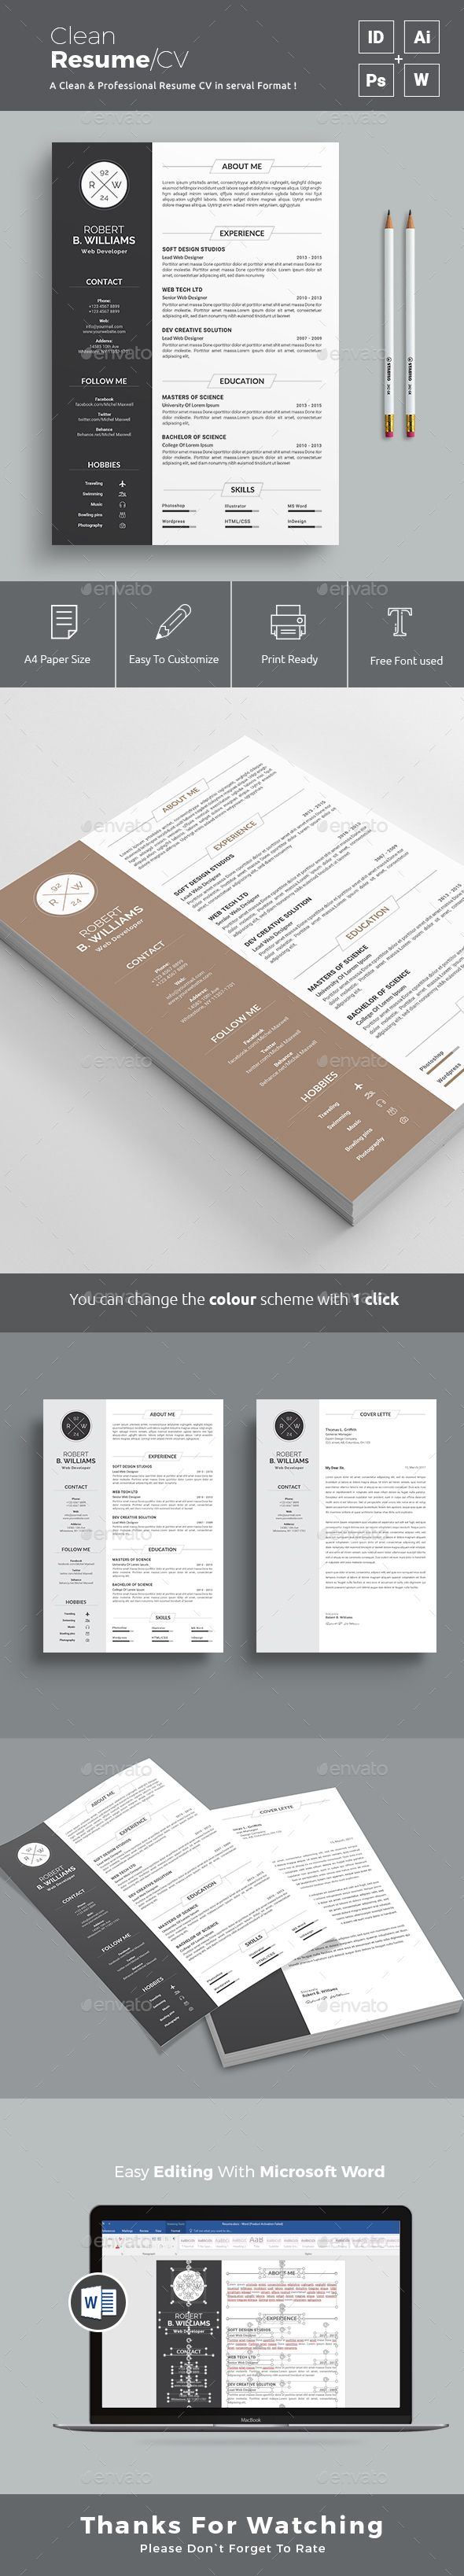 Resume Refrences  Best Images About Resumecv Word Template On Pinterest  Adobe  Define Resumed Word with Resume References Format Excel Resume Office Manager Resume Samples